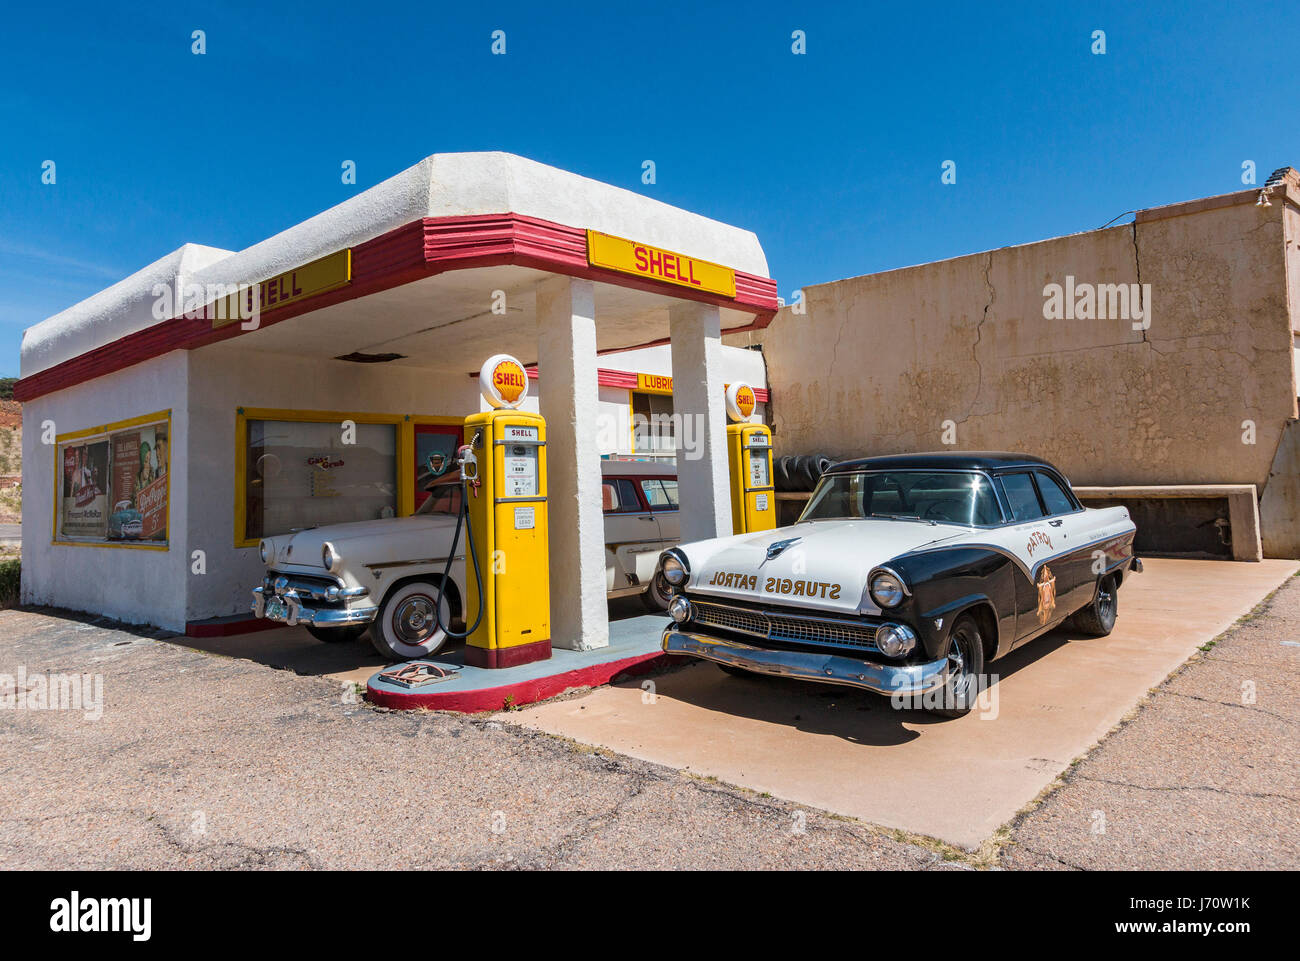 Diesel Gas Stations Near Me >> Old Gas Pumps in Iowa - Bing images